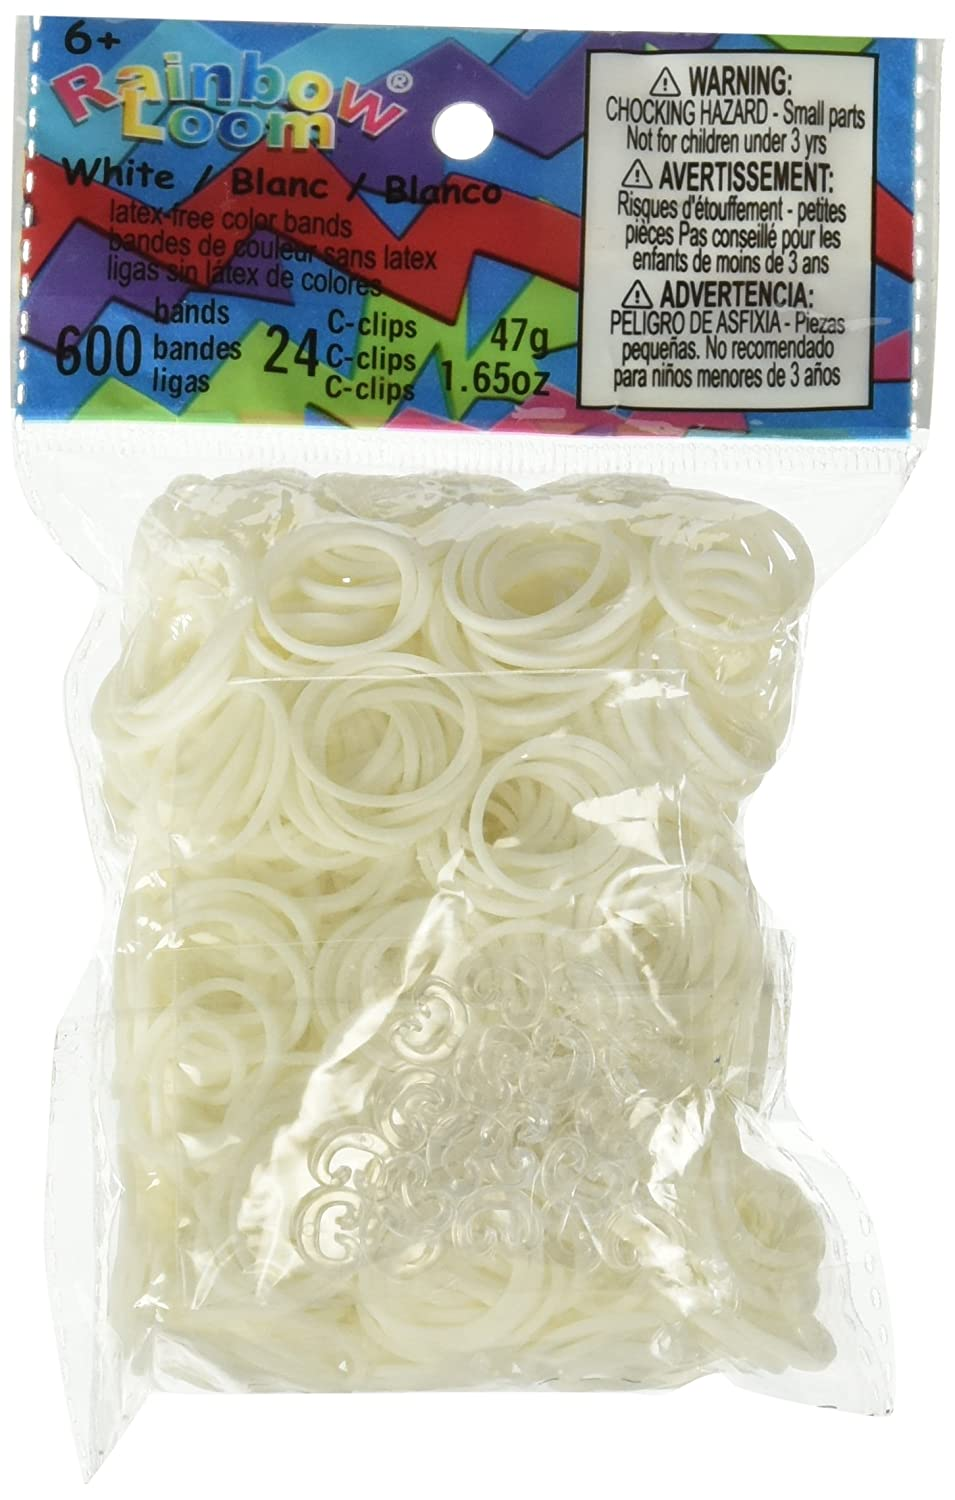 Rainbow Loom Official White Rubber Bands Refill 600 count + 24 C-clips TB011